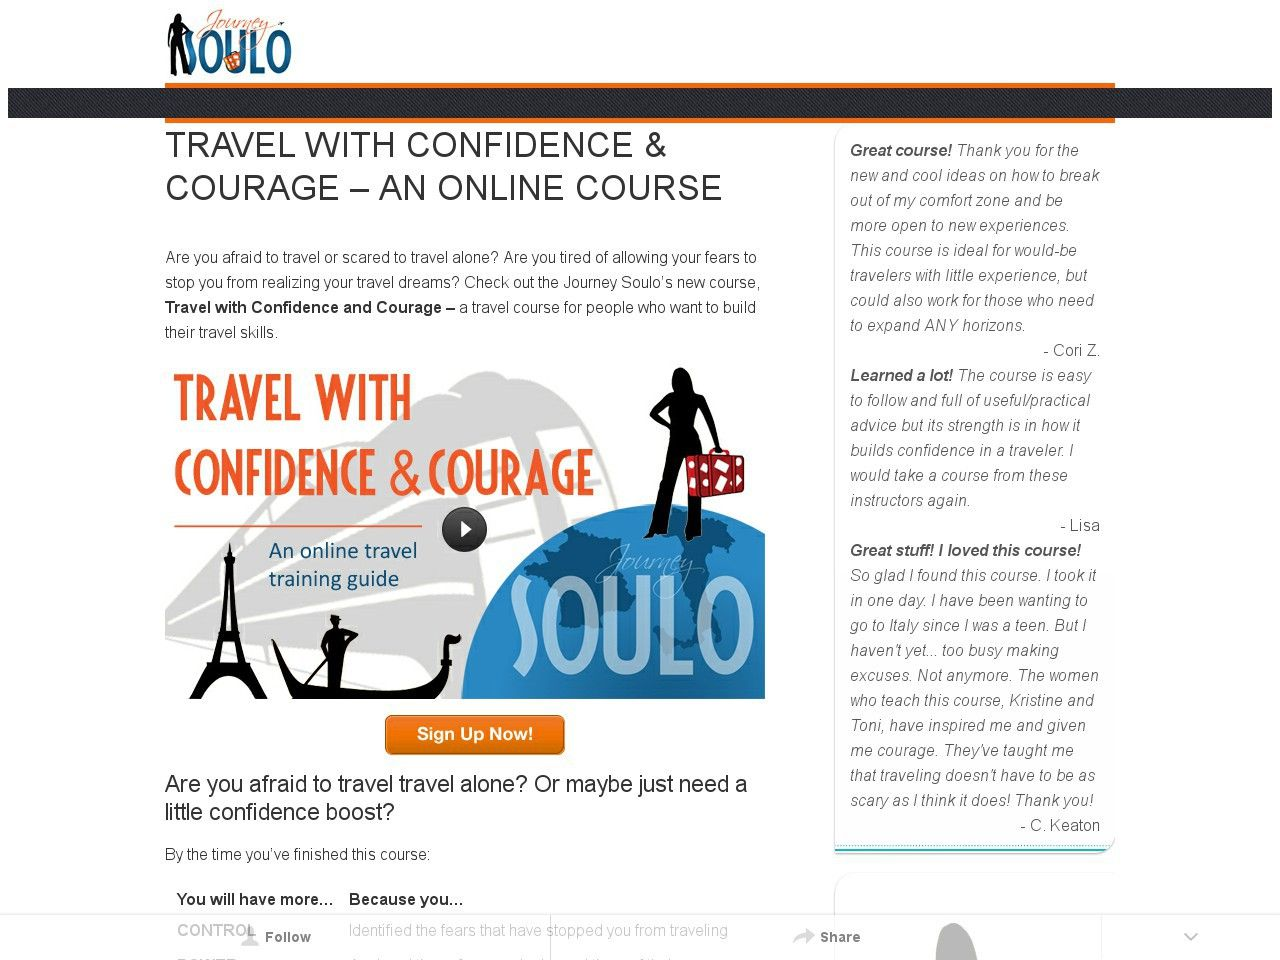 [Get] Travel With Confidence & Courage - Tools For Travelers - http://www.vnulab.be/lab-review/travel-with-confidence-courage-tools-for-travelers-3 ,http://s.wordpress.com/mshots/v1/http%3A%2F%2Fforexrbot.jsoulo.hop.clickbank.net